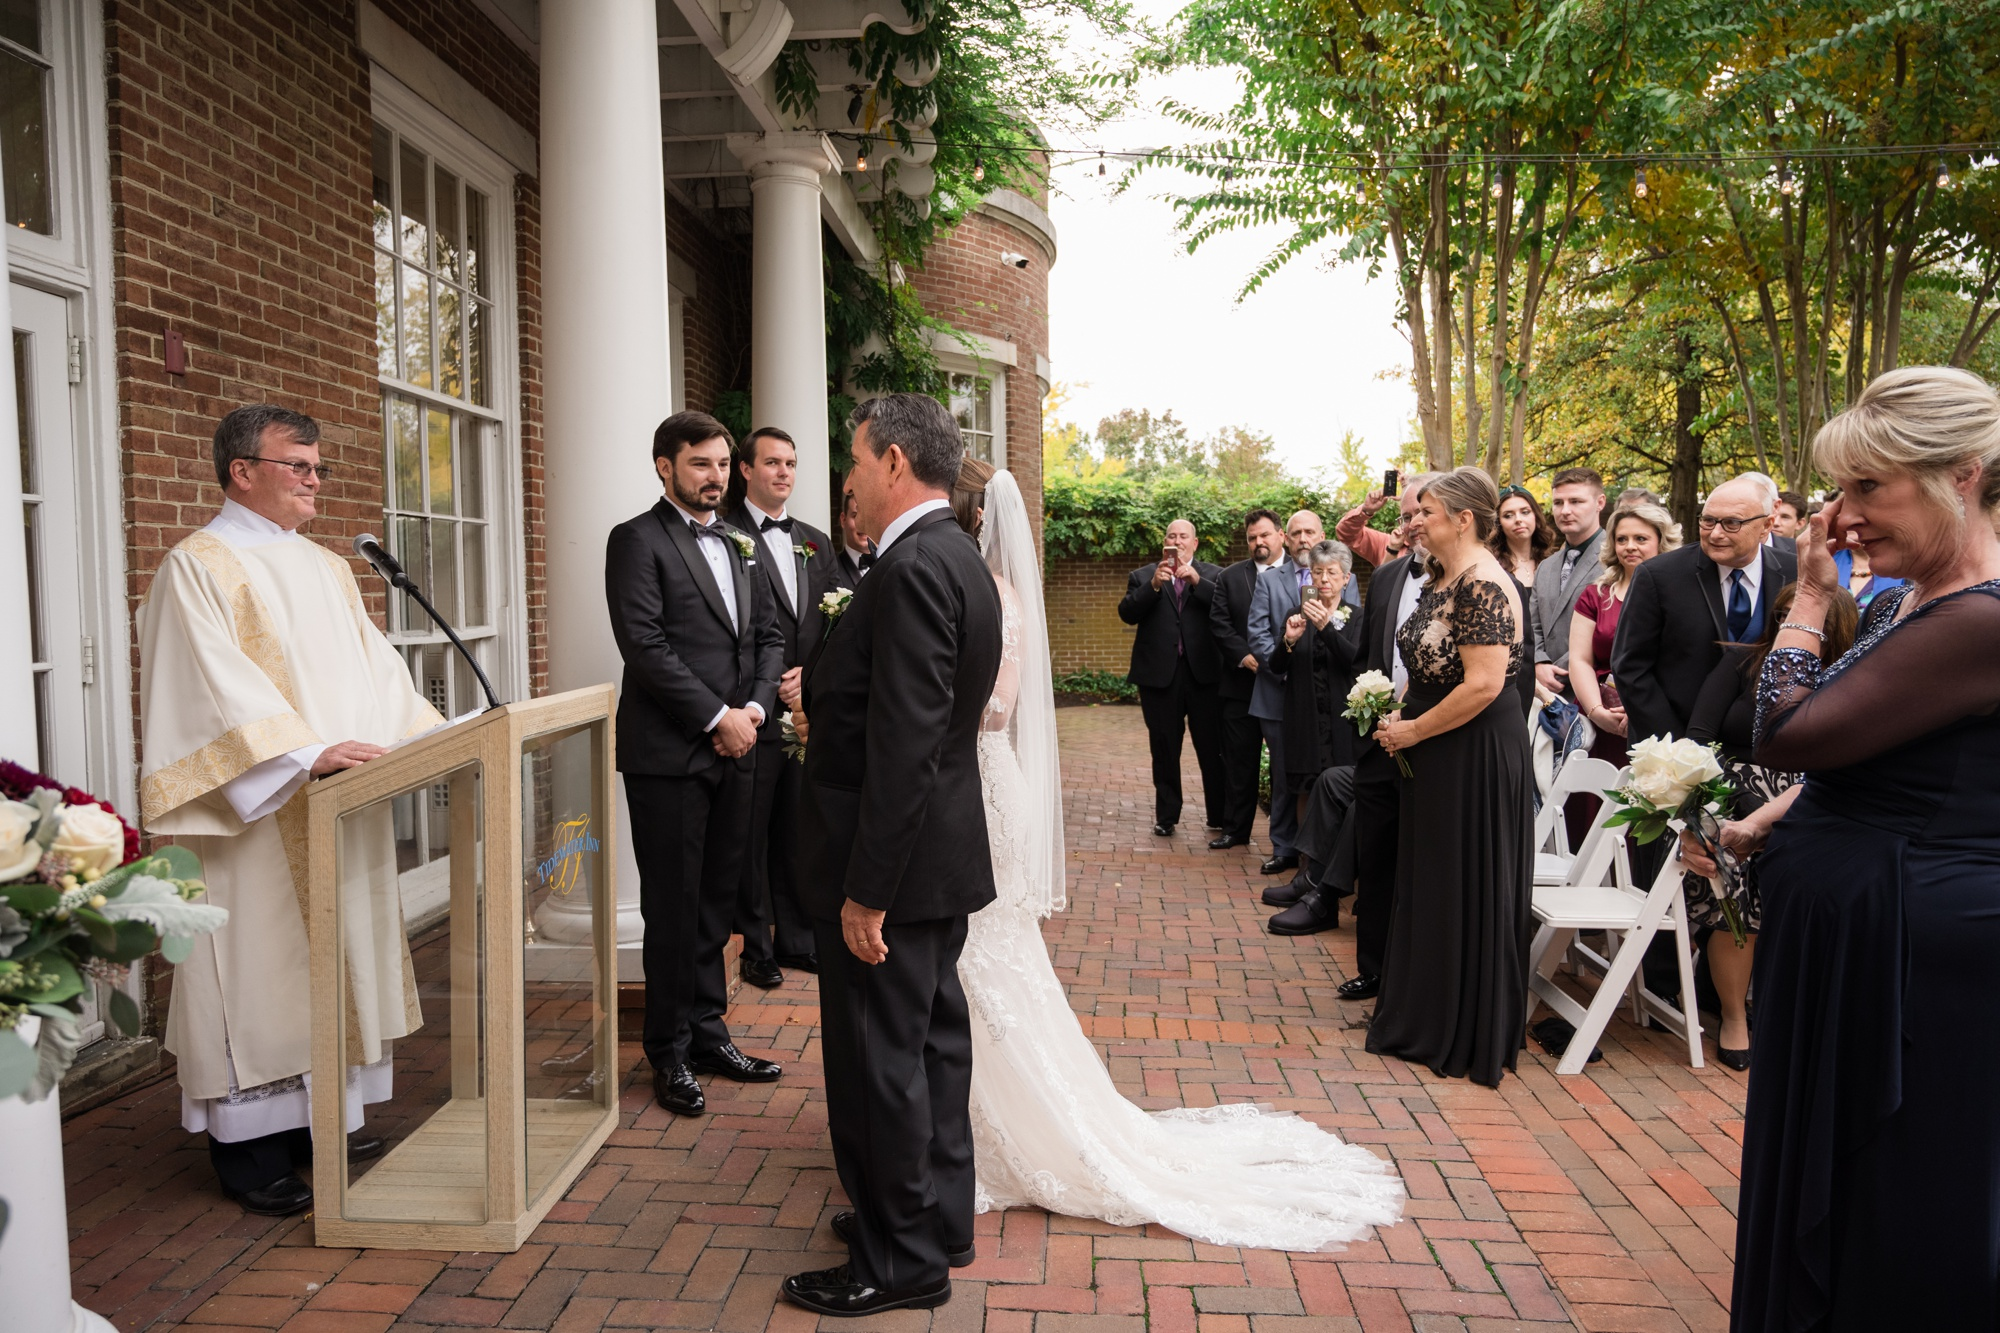 The Tidewater Inn outdoor wedding ceremony